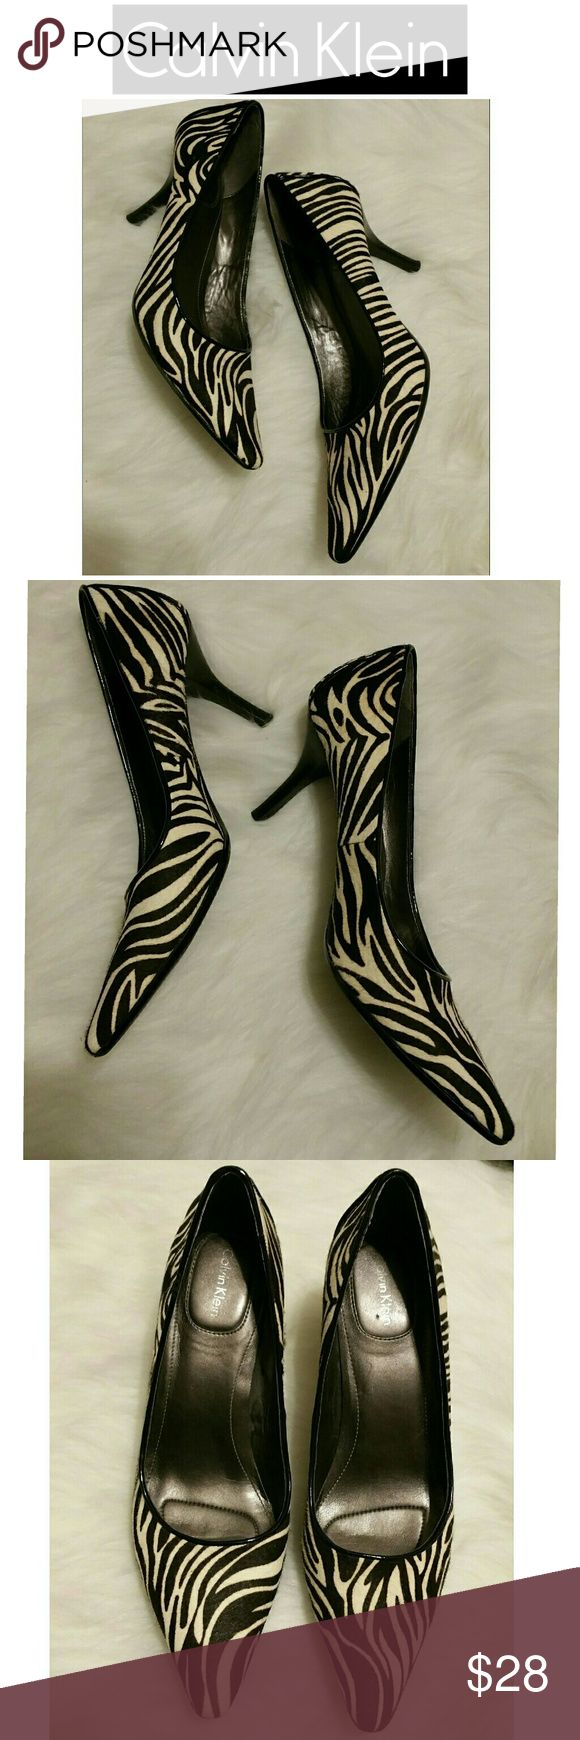 SALE!!  Calvin Klein Dolly Zebra Pumps Super pretty!  The zebra fur is soft and in perfect condition.  These pumps are perfect to add a little POP to your outfit!   Calvin Klein heels are among the most comfortable heels I've ever worn. Calvin Klein Shoes Heels